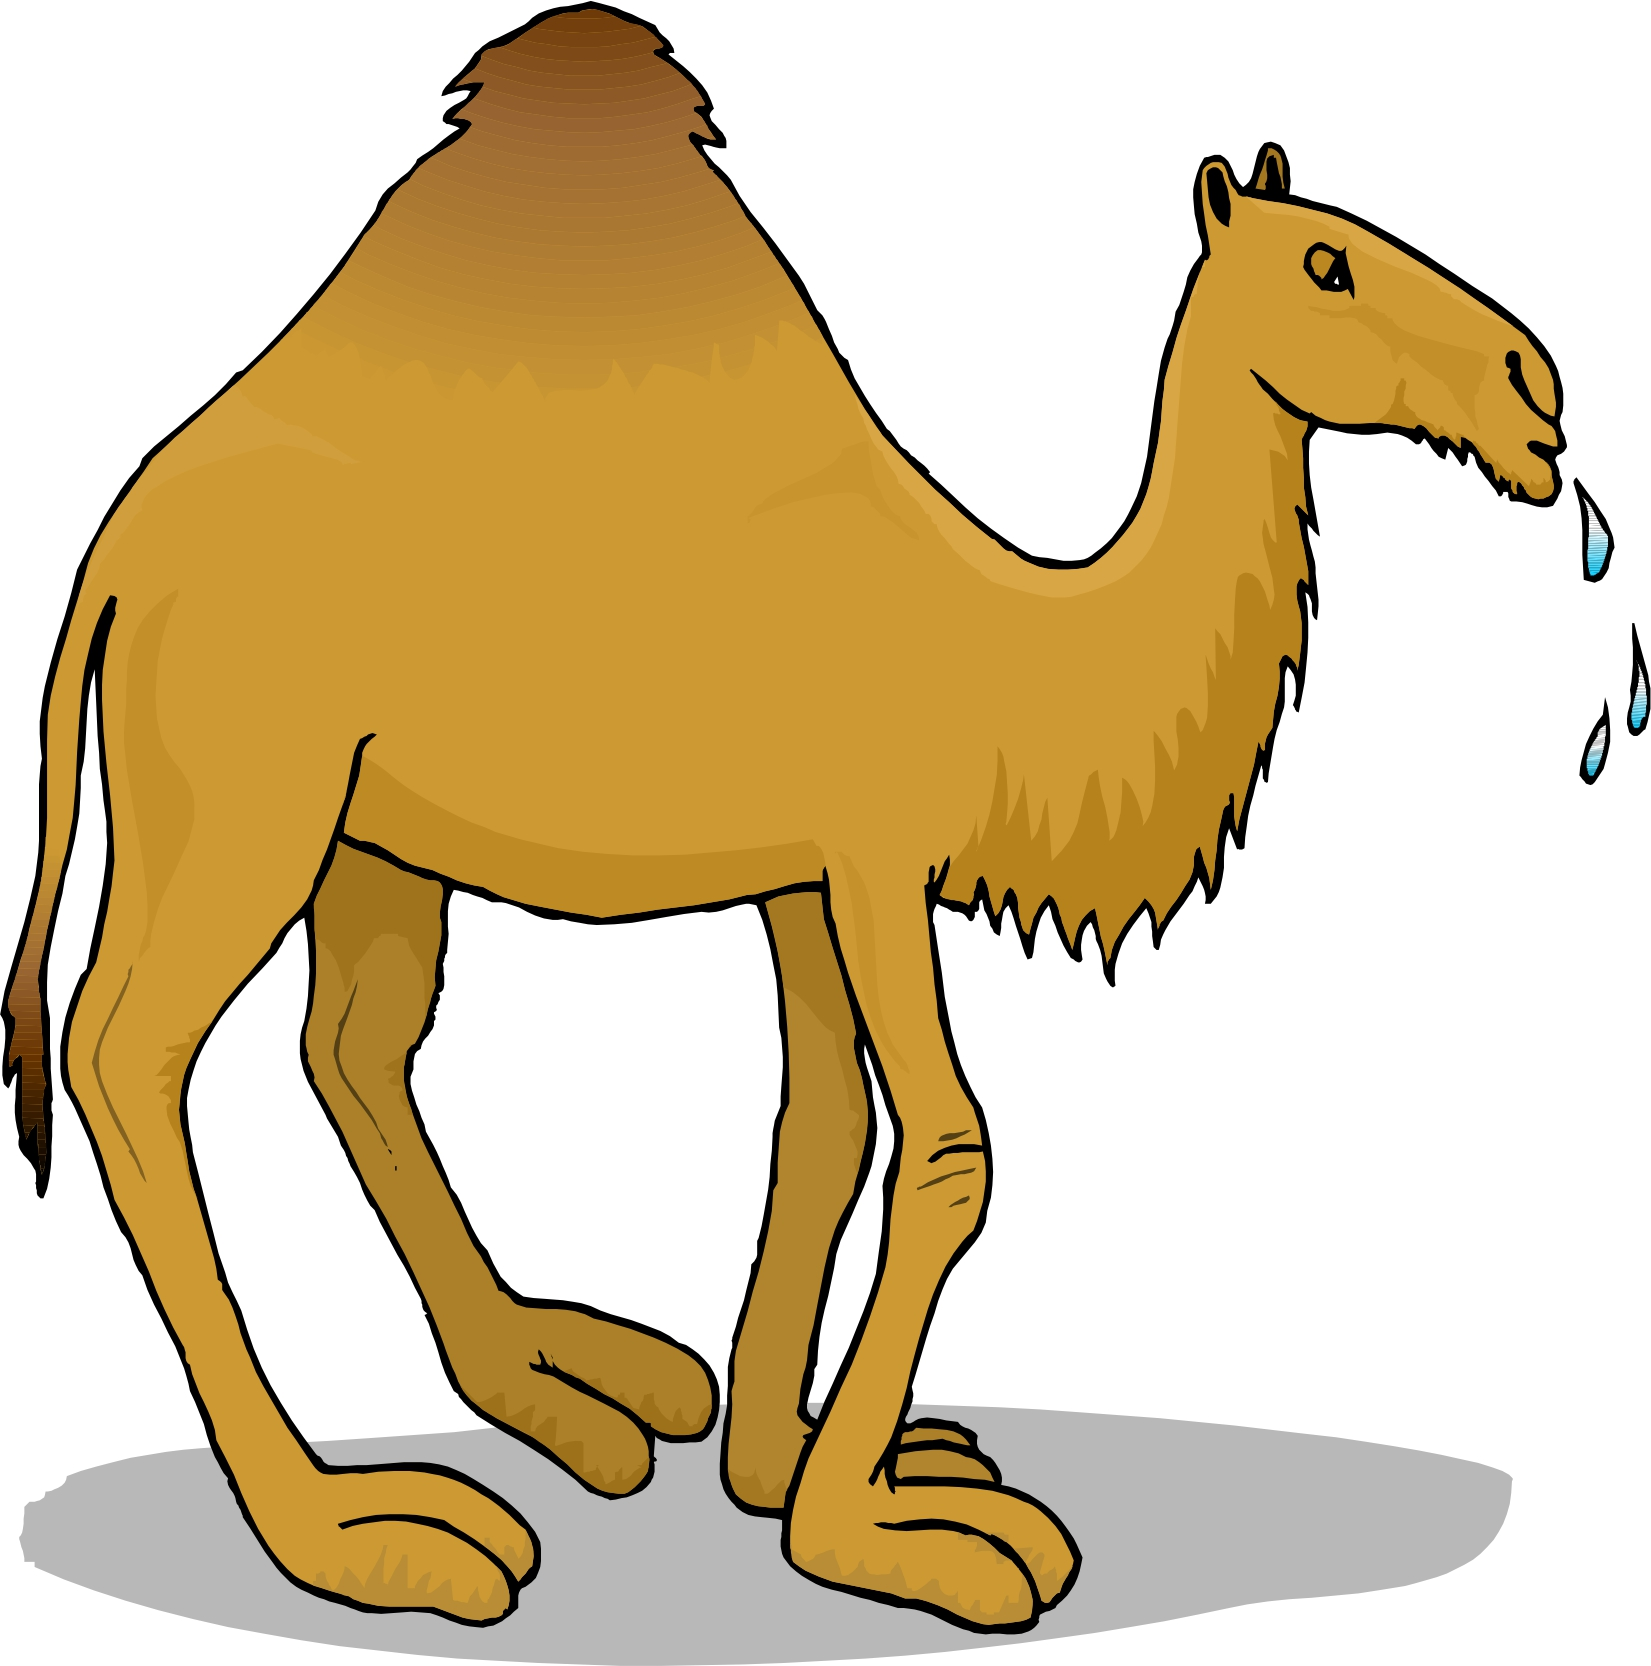 Animals Crafts Ideas: Reptiles, Critters, Bugs, Insects Arts Cartoon pictures of camels